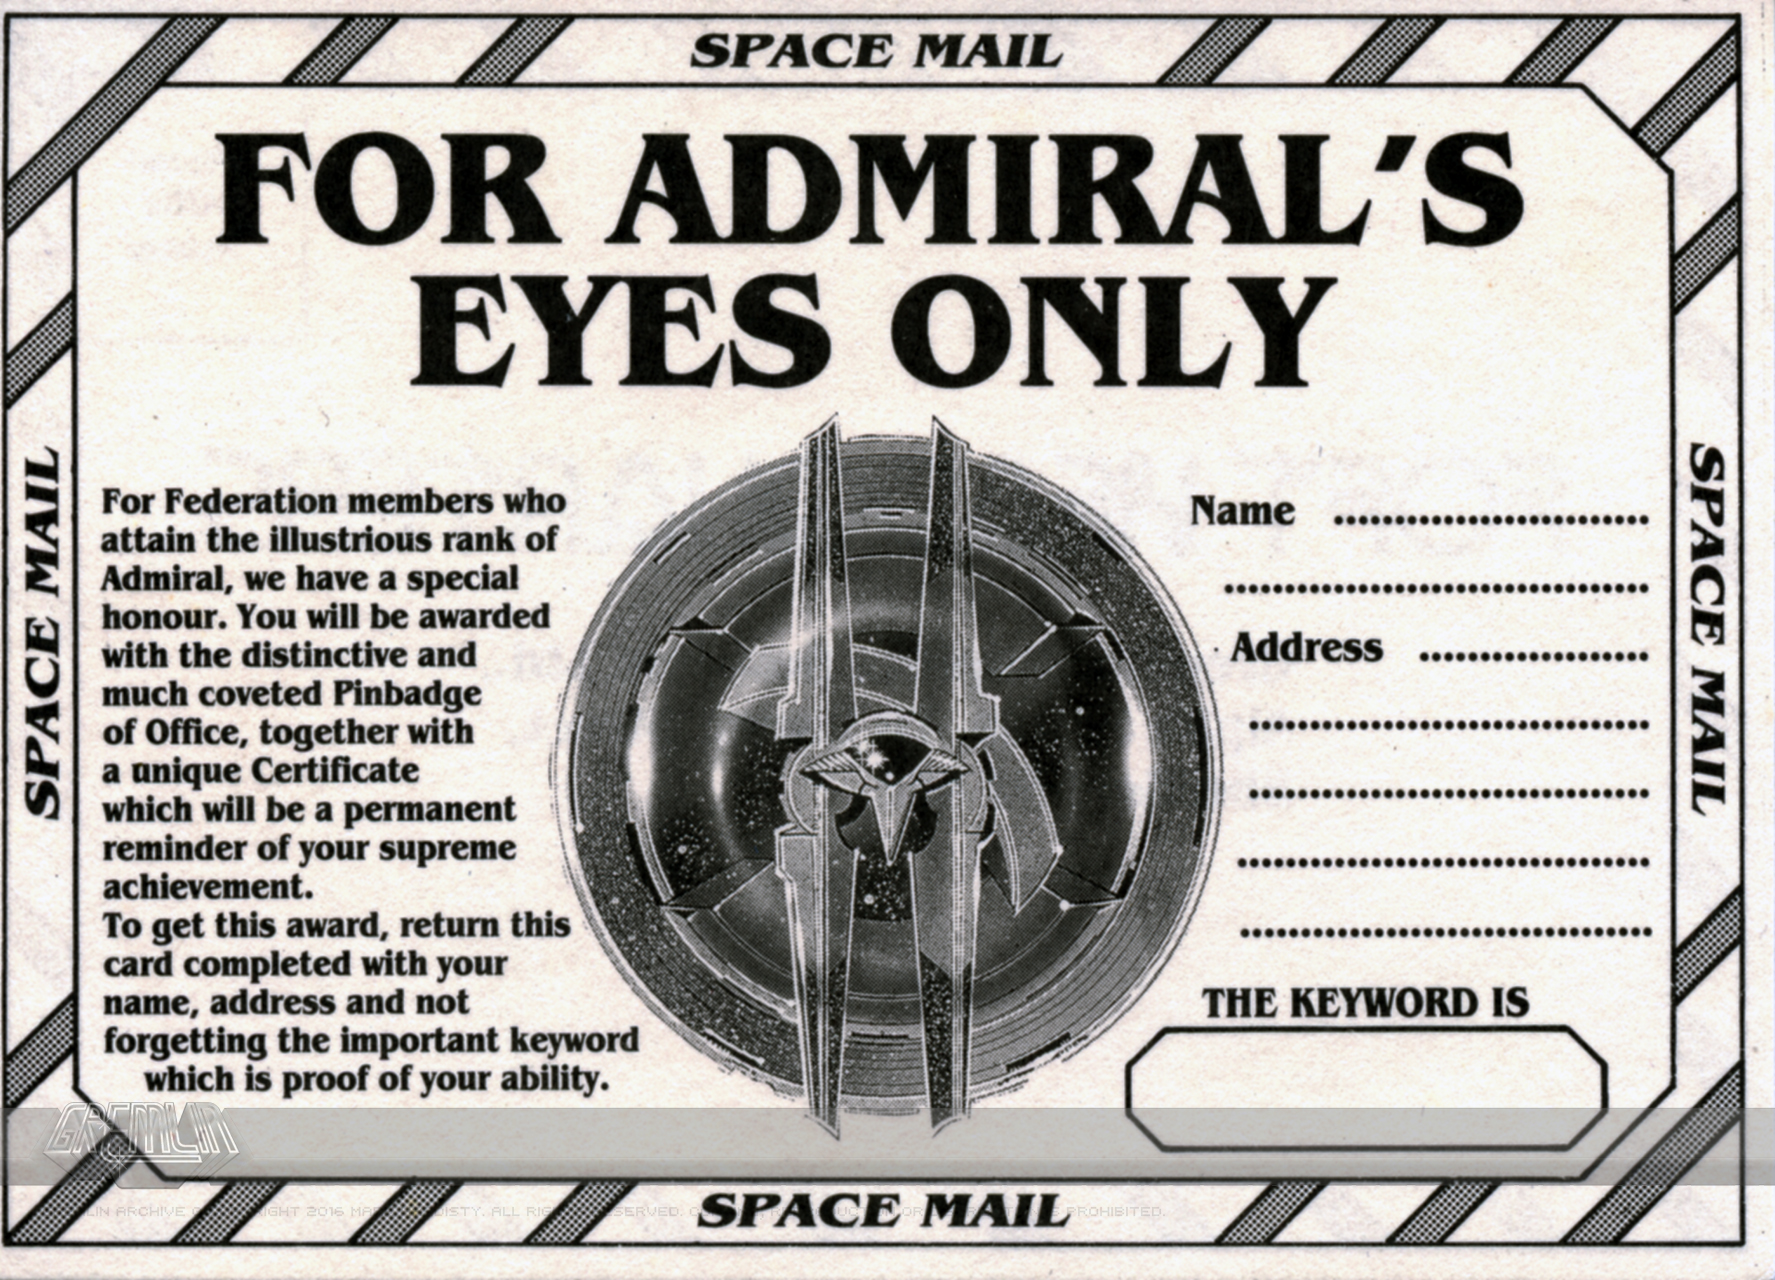 For Admiral's Eyes Only